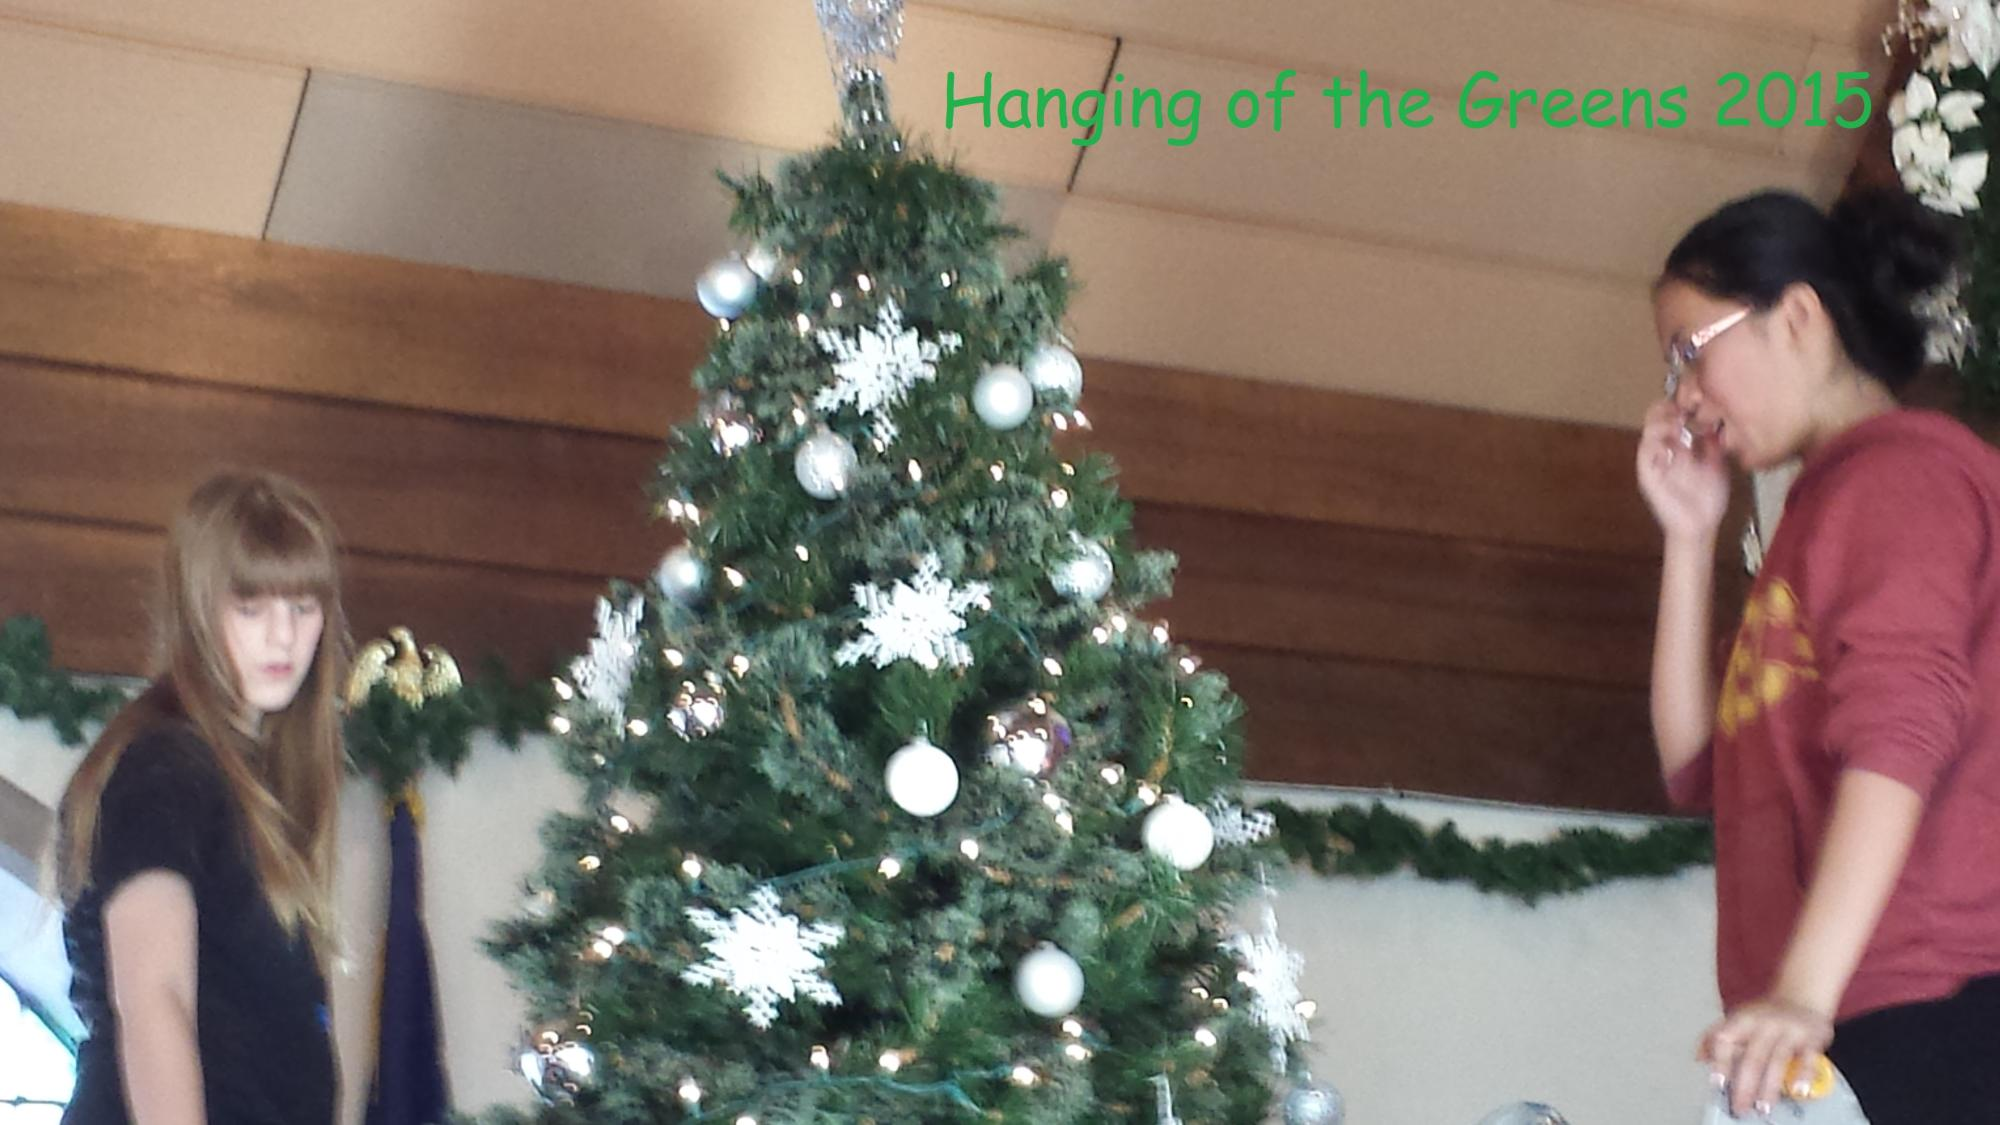 Hanging of the Greens 2015